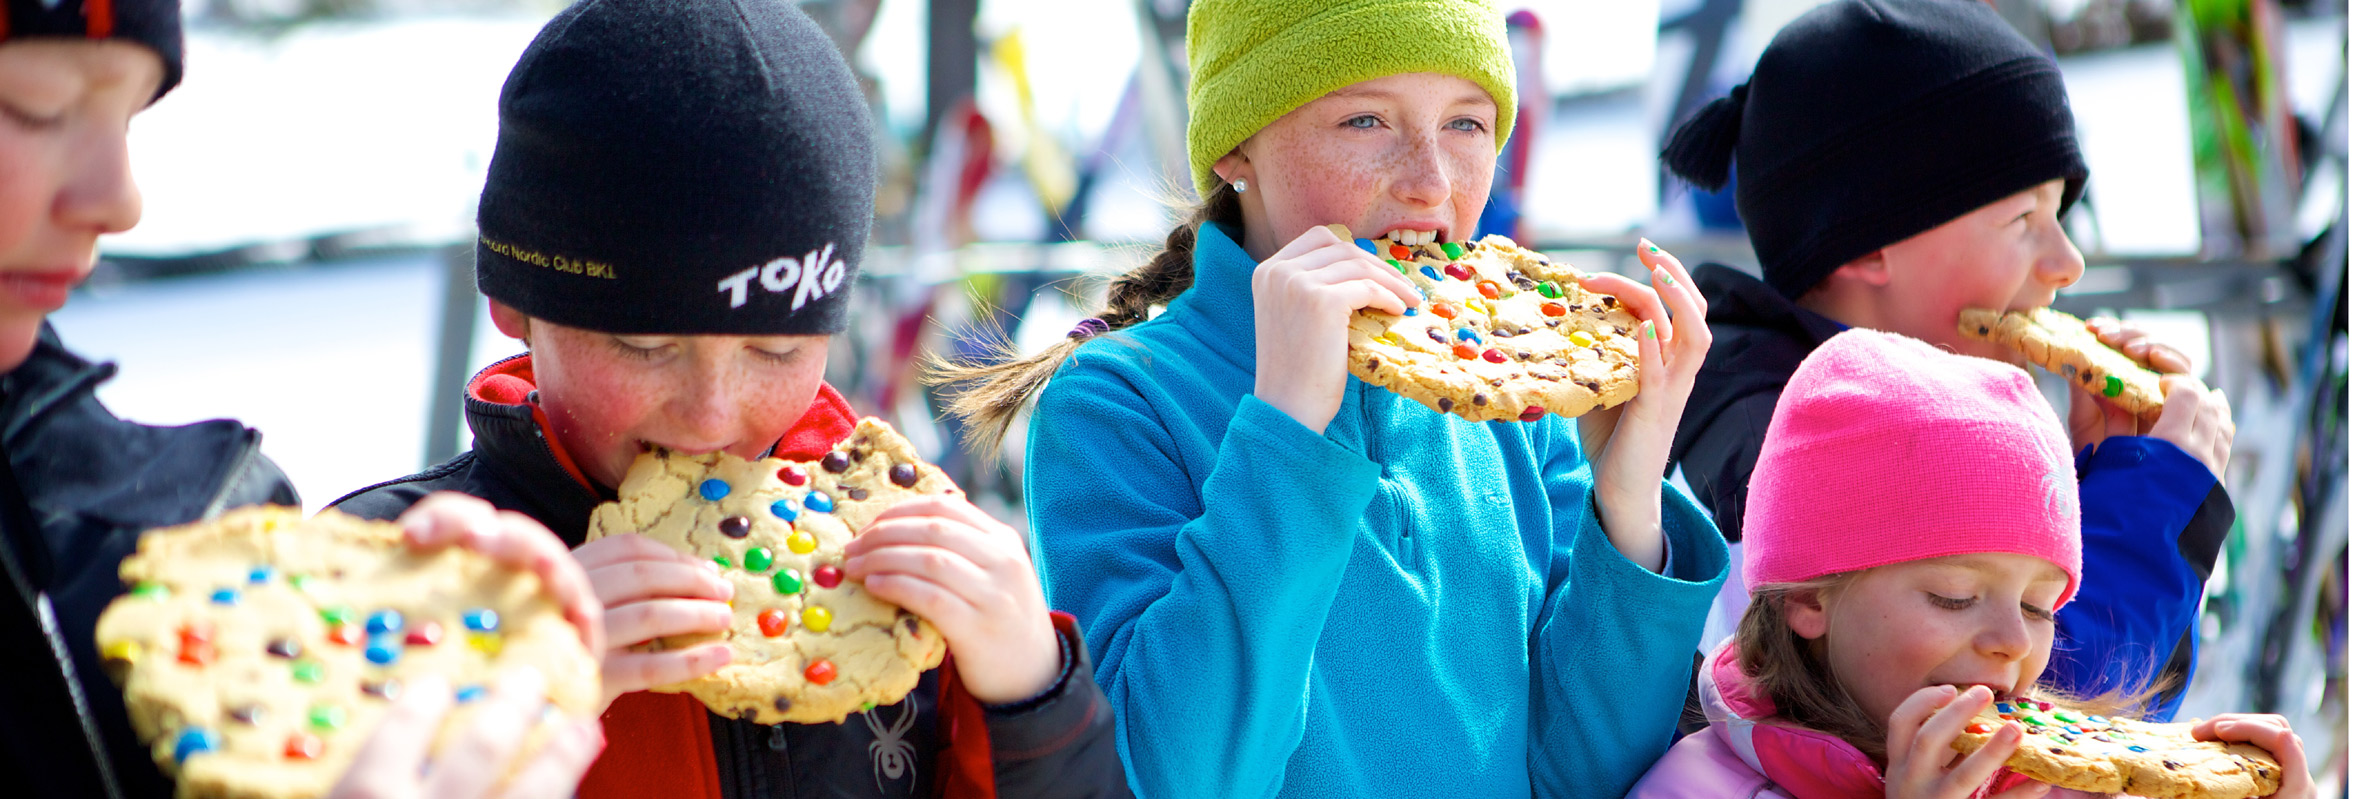 Photo of kids eating Pats Peak cookies